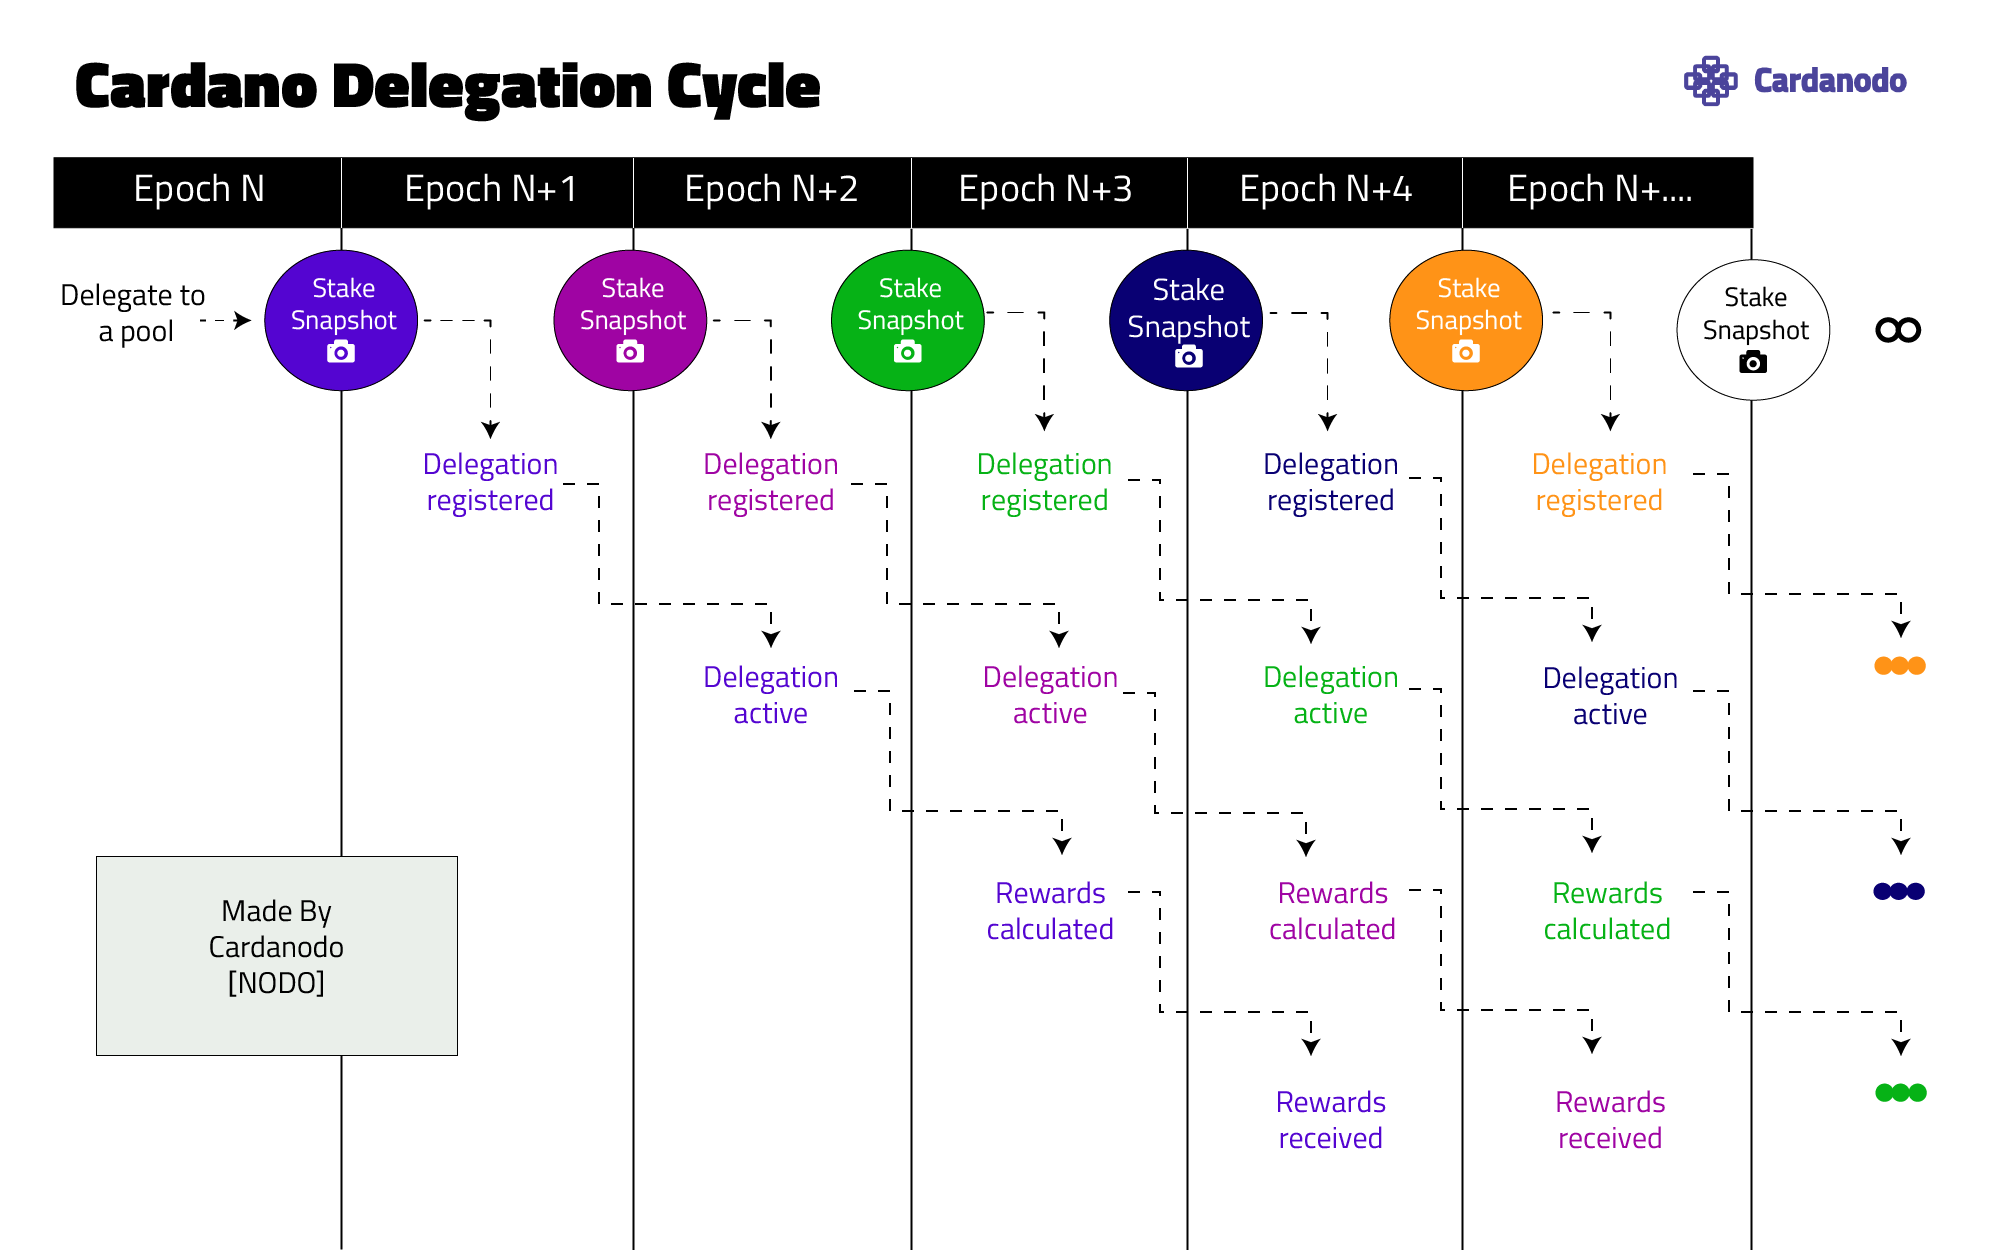 Cardano Delegation Cycle Graphic